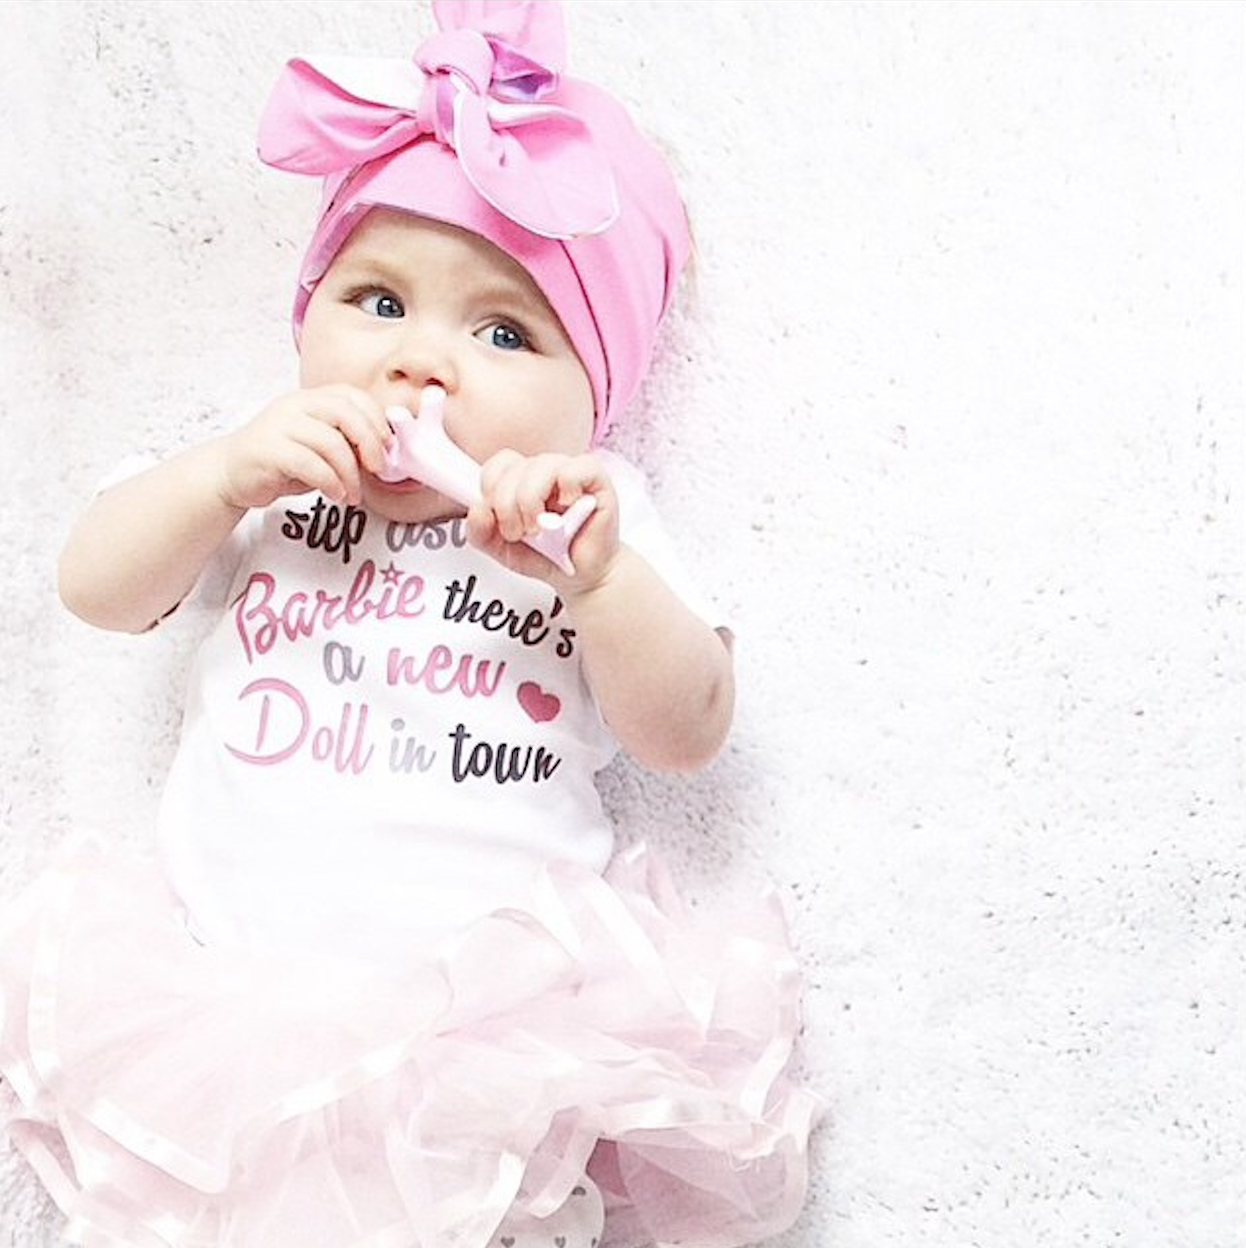 Design Your Own Onesie - design request and photo by @dollfacegrace via Instagram